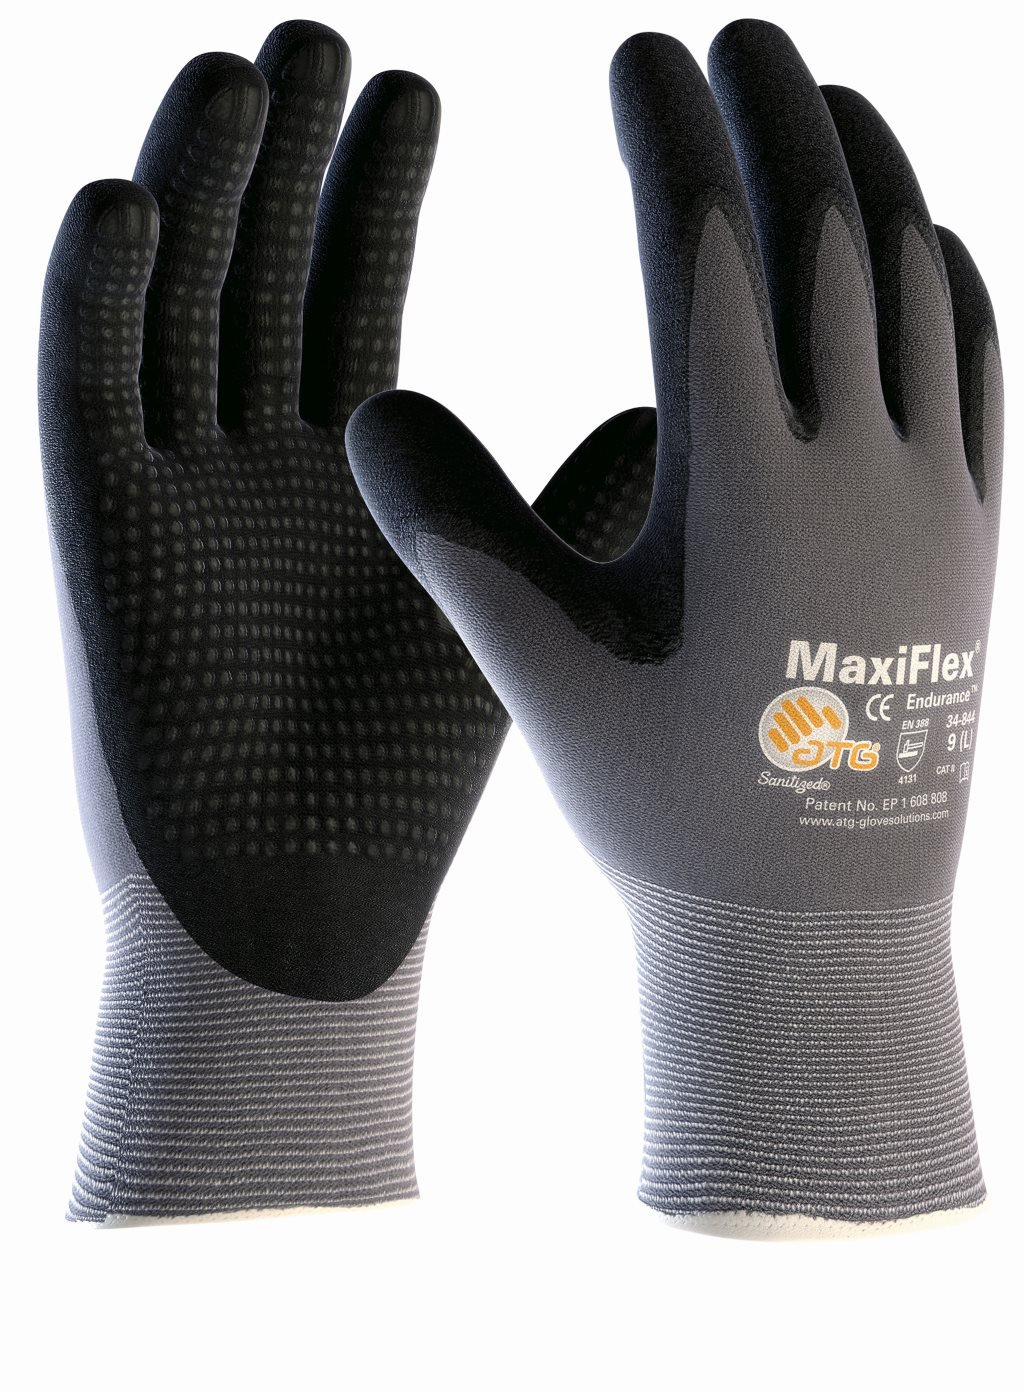 5 Pairs Nylon Knitted Gloves MaxiFlex Endurance 2442, Gr.8, 38